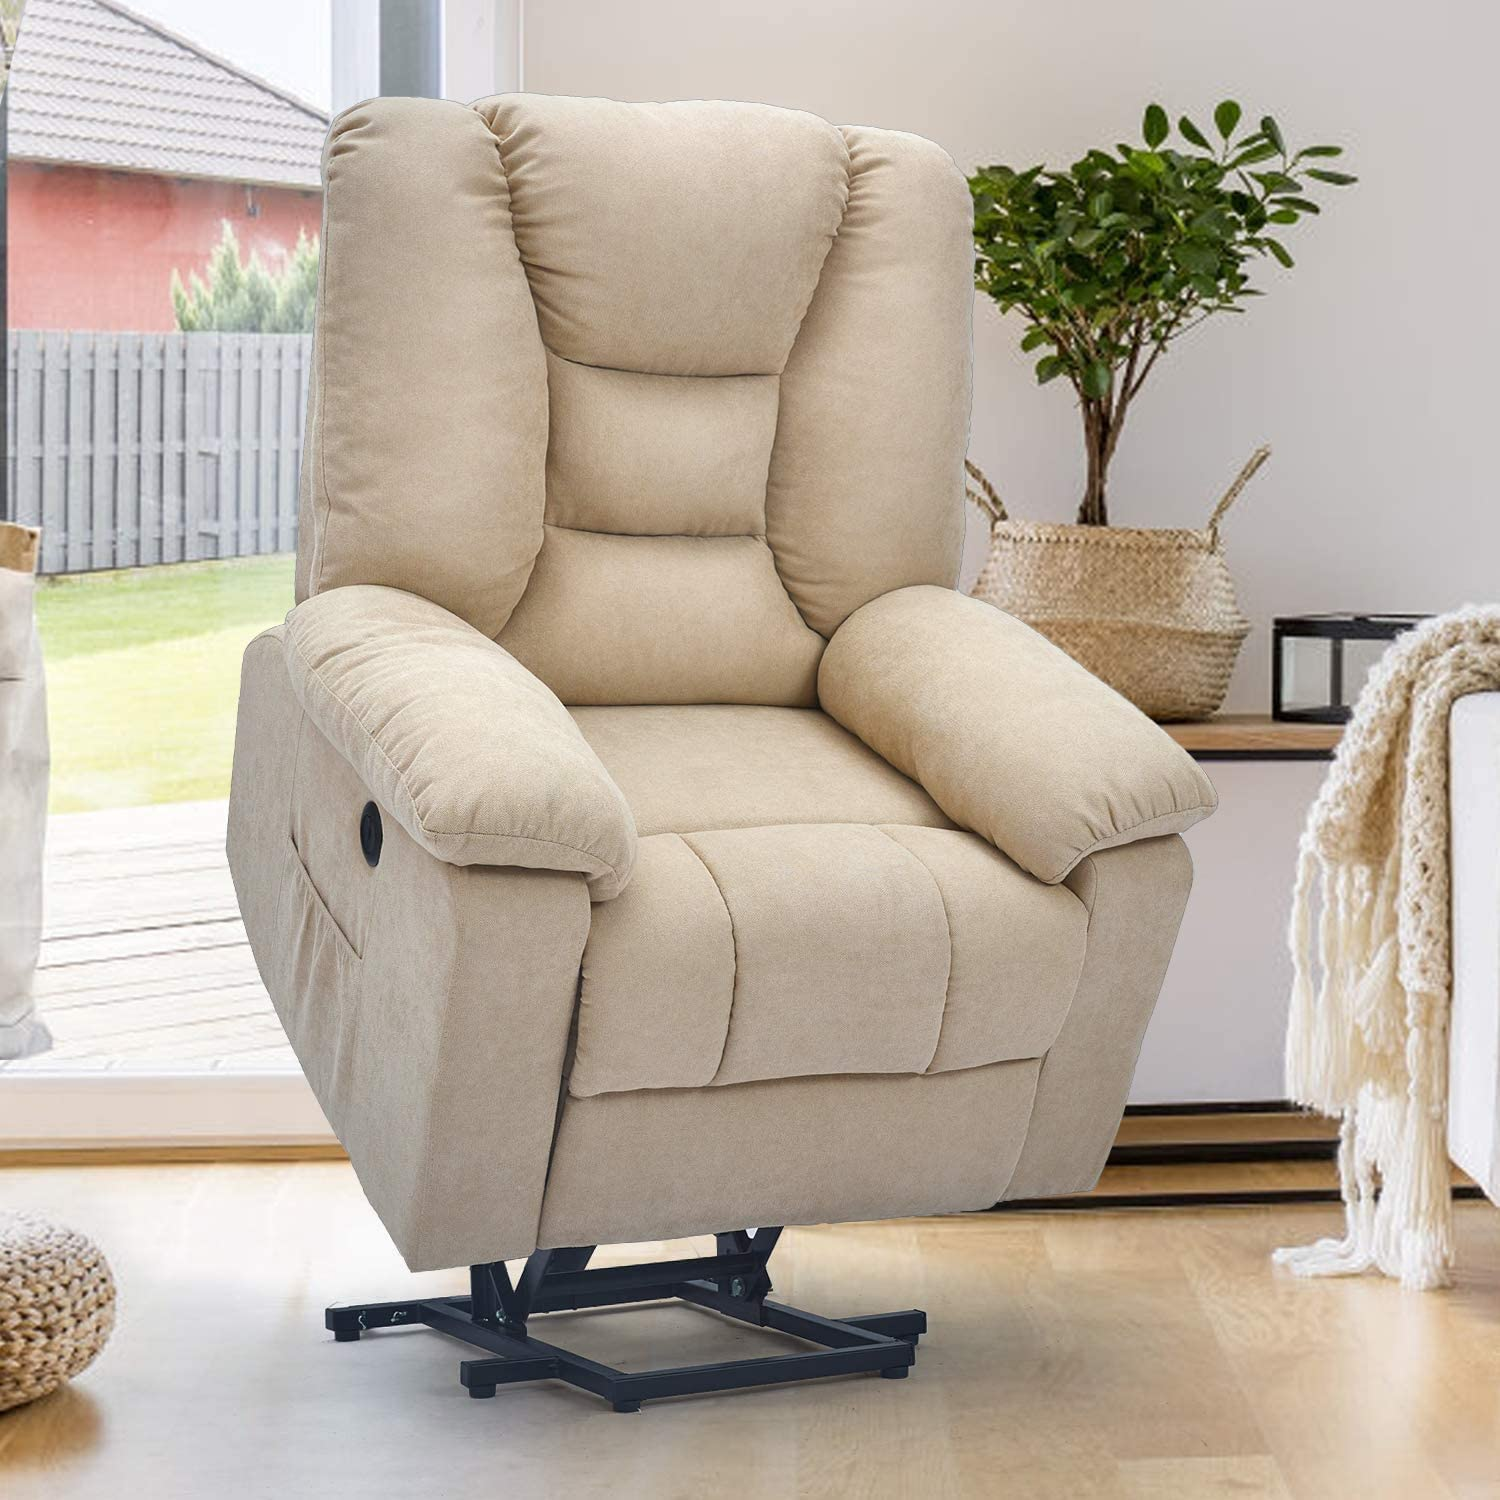 gifts-for-elderly-women-power-lifter-chair